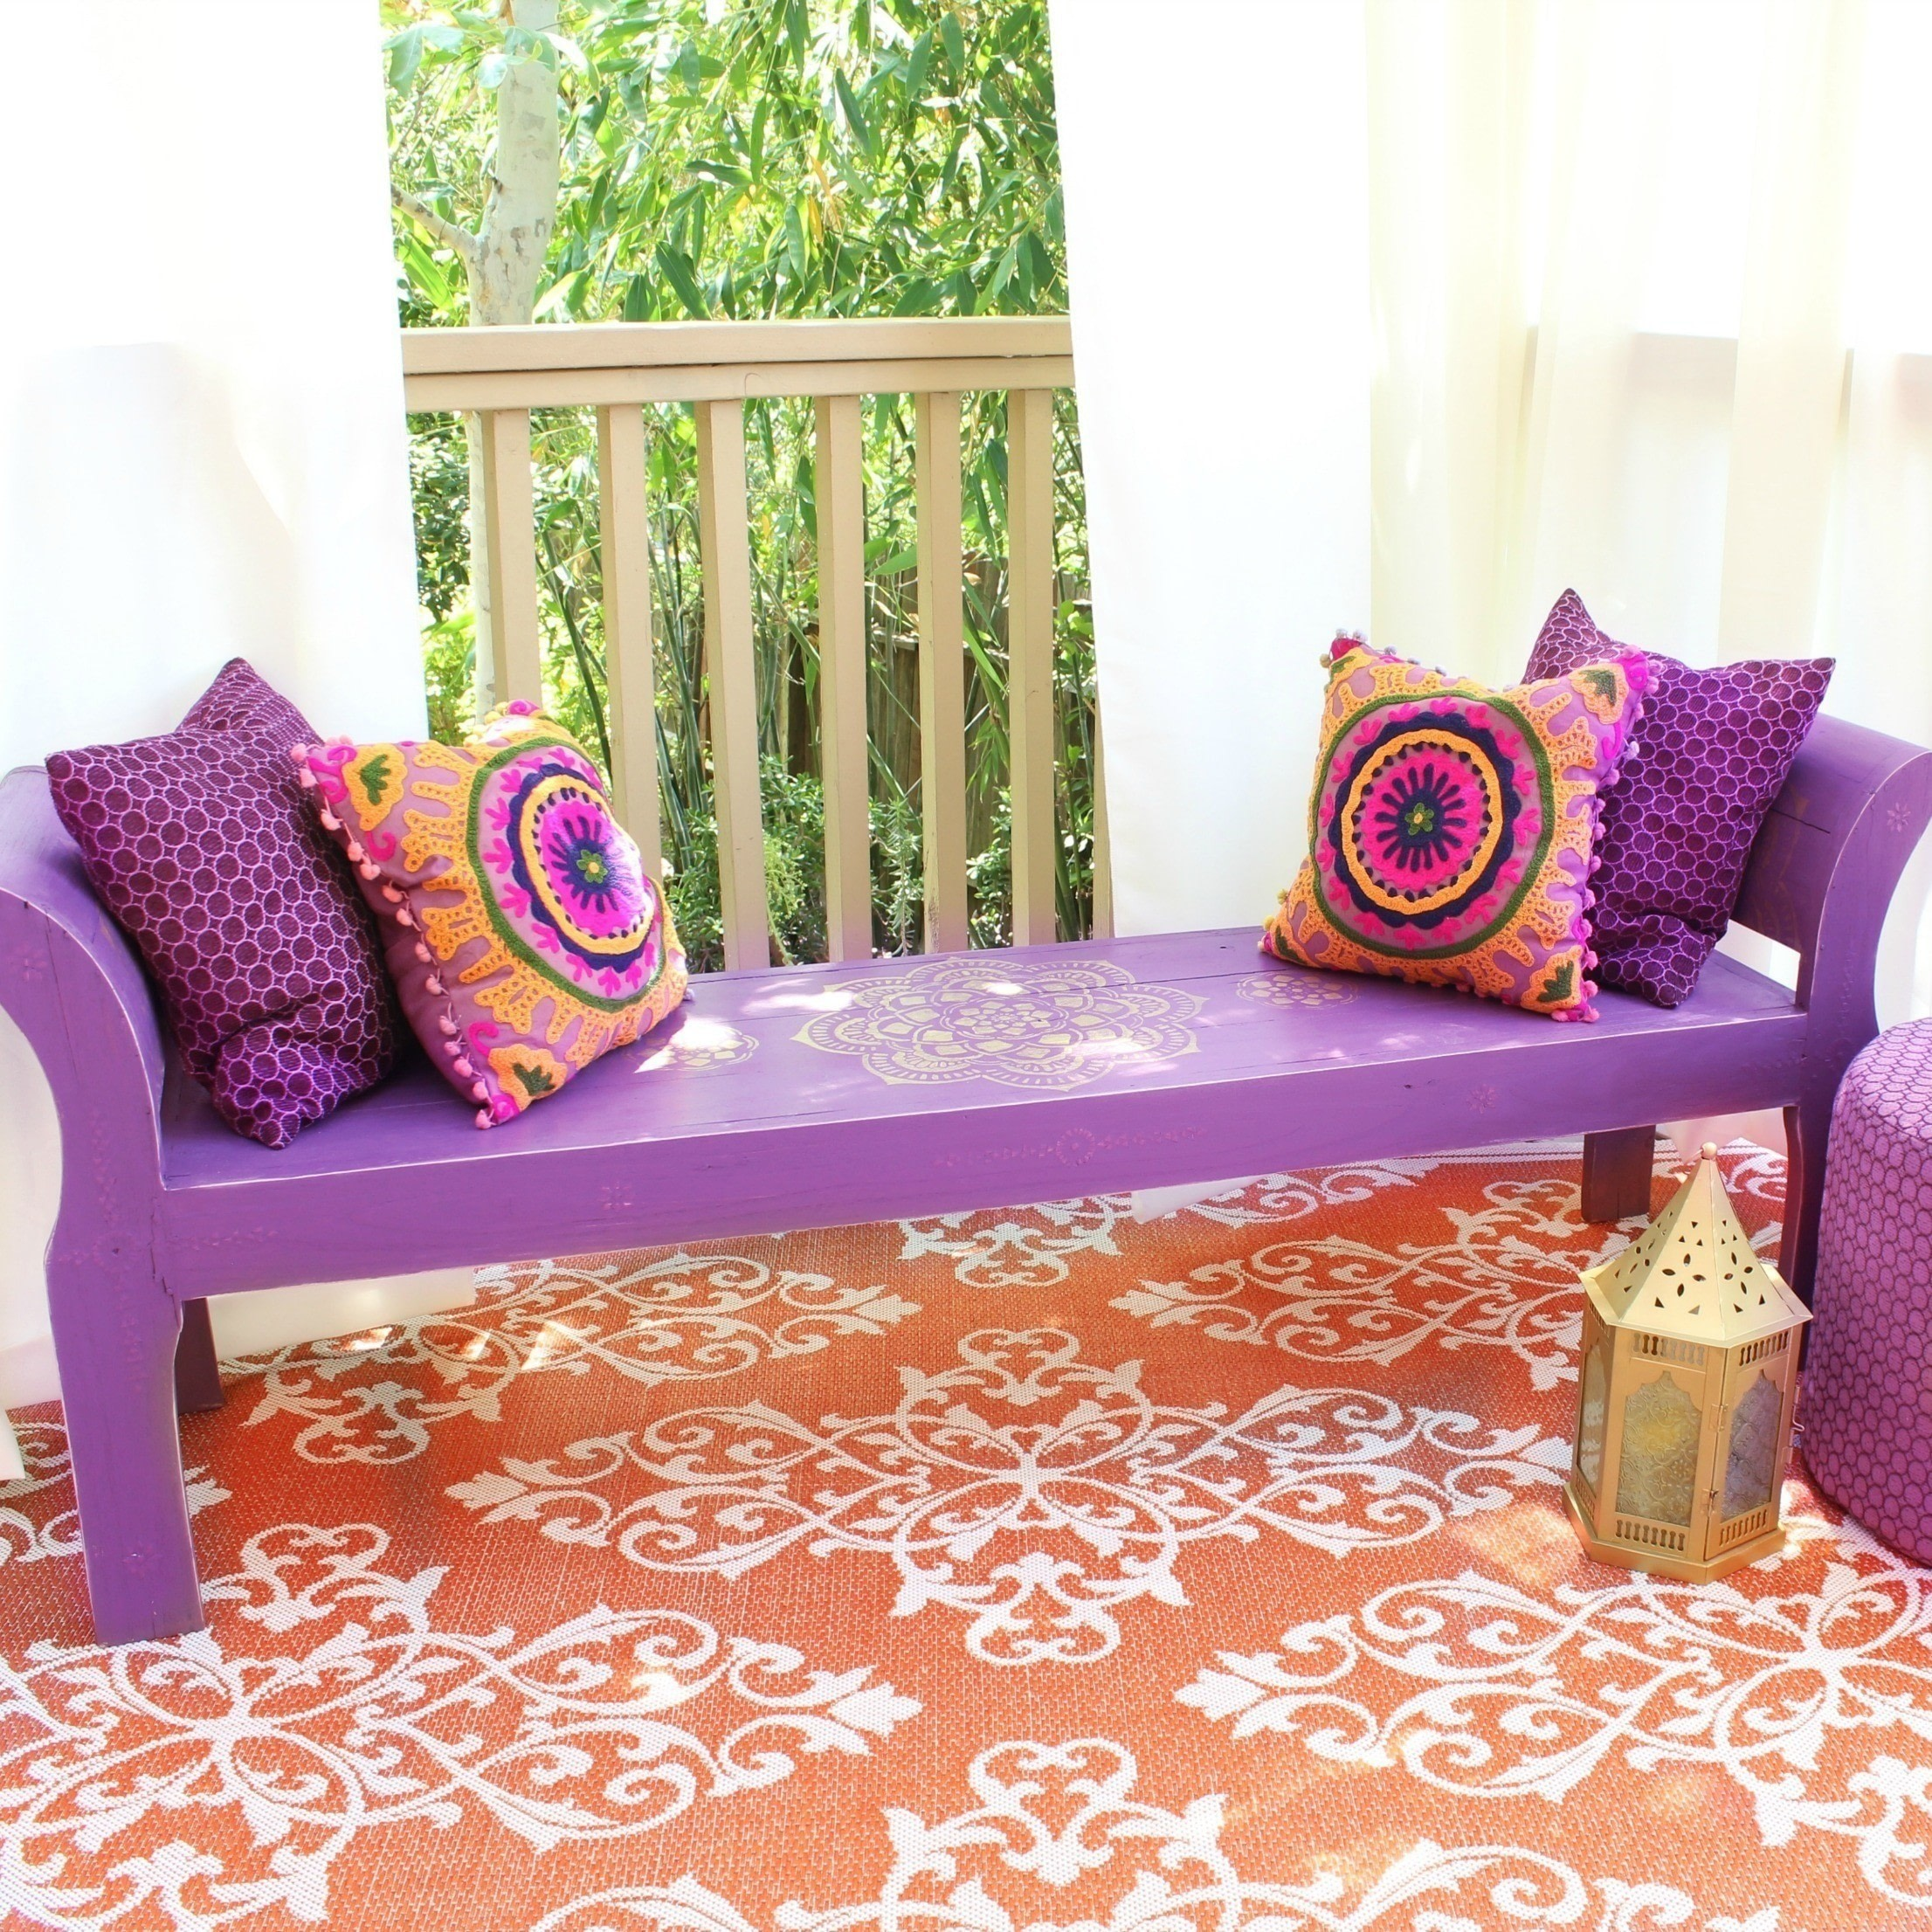 Boho Bench Makeover 183 How To Make A Bench 183 Decorating On